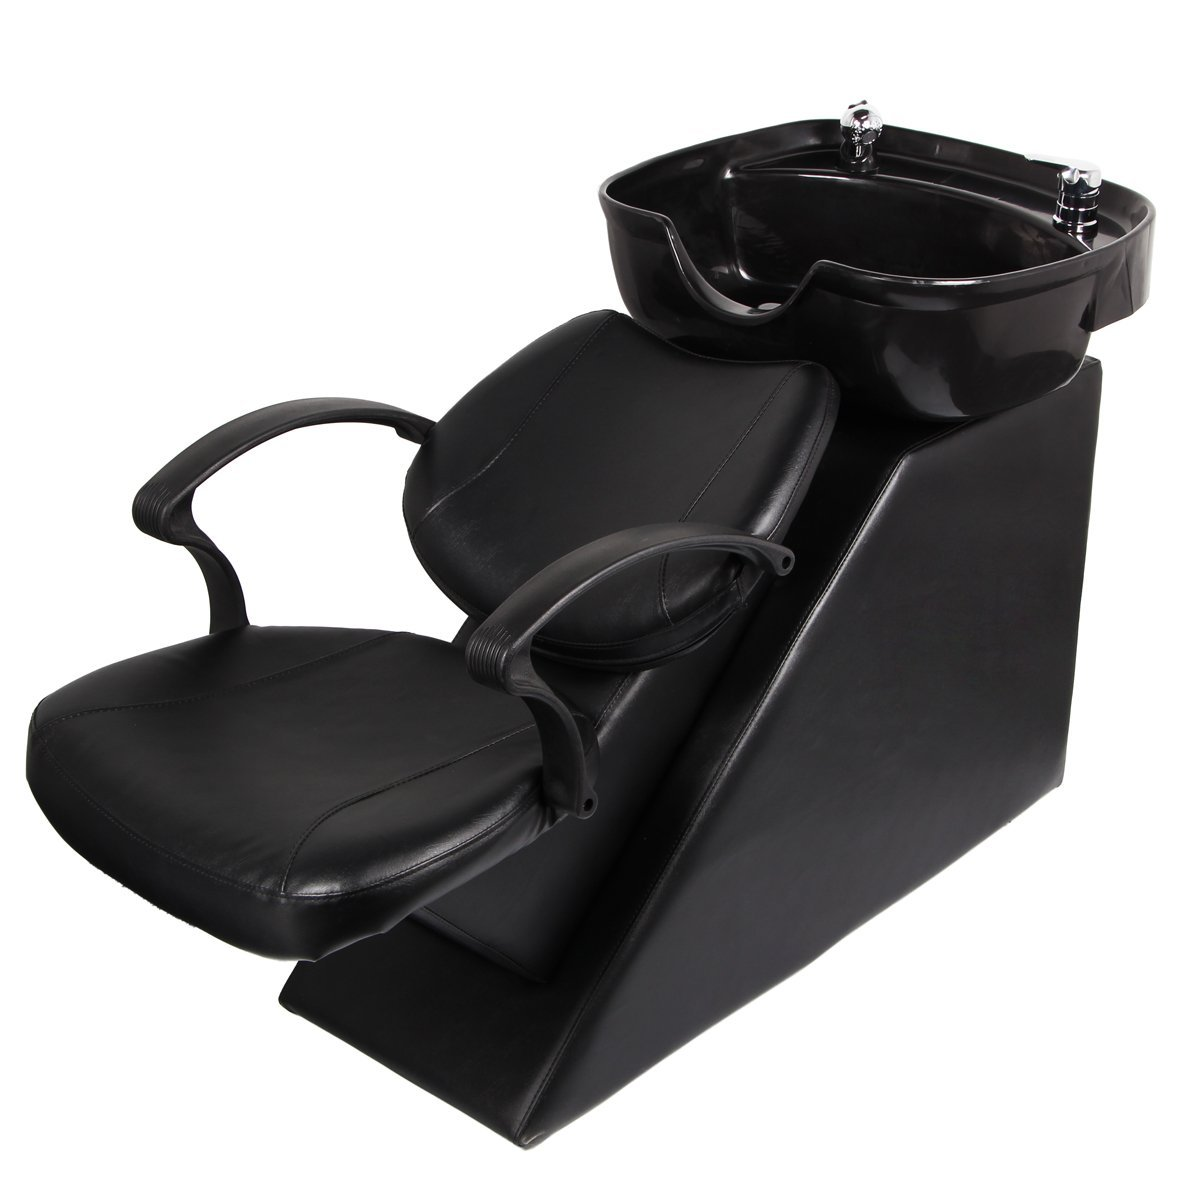 top 10 best salon shampoo chairs you can buy right now